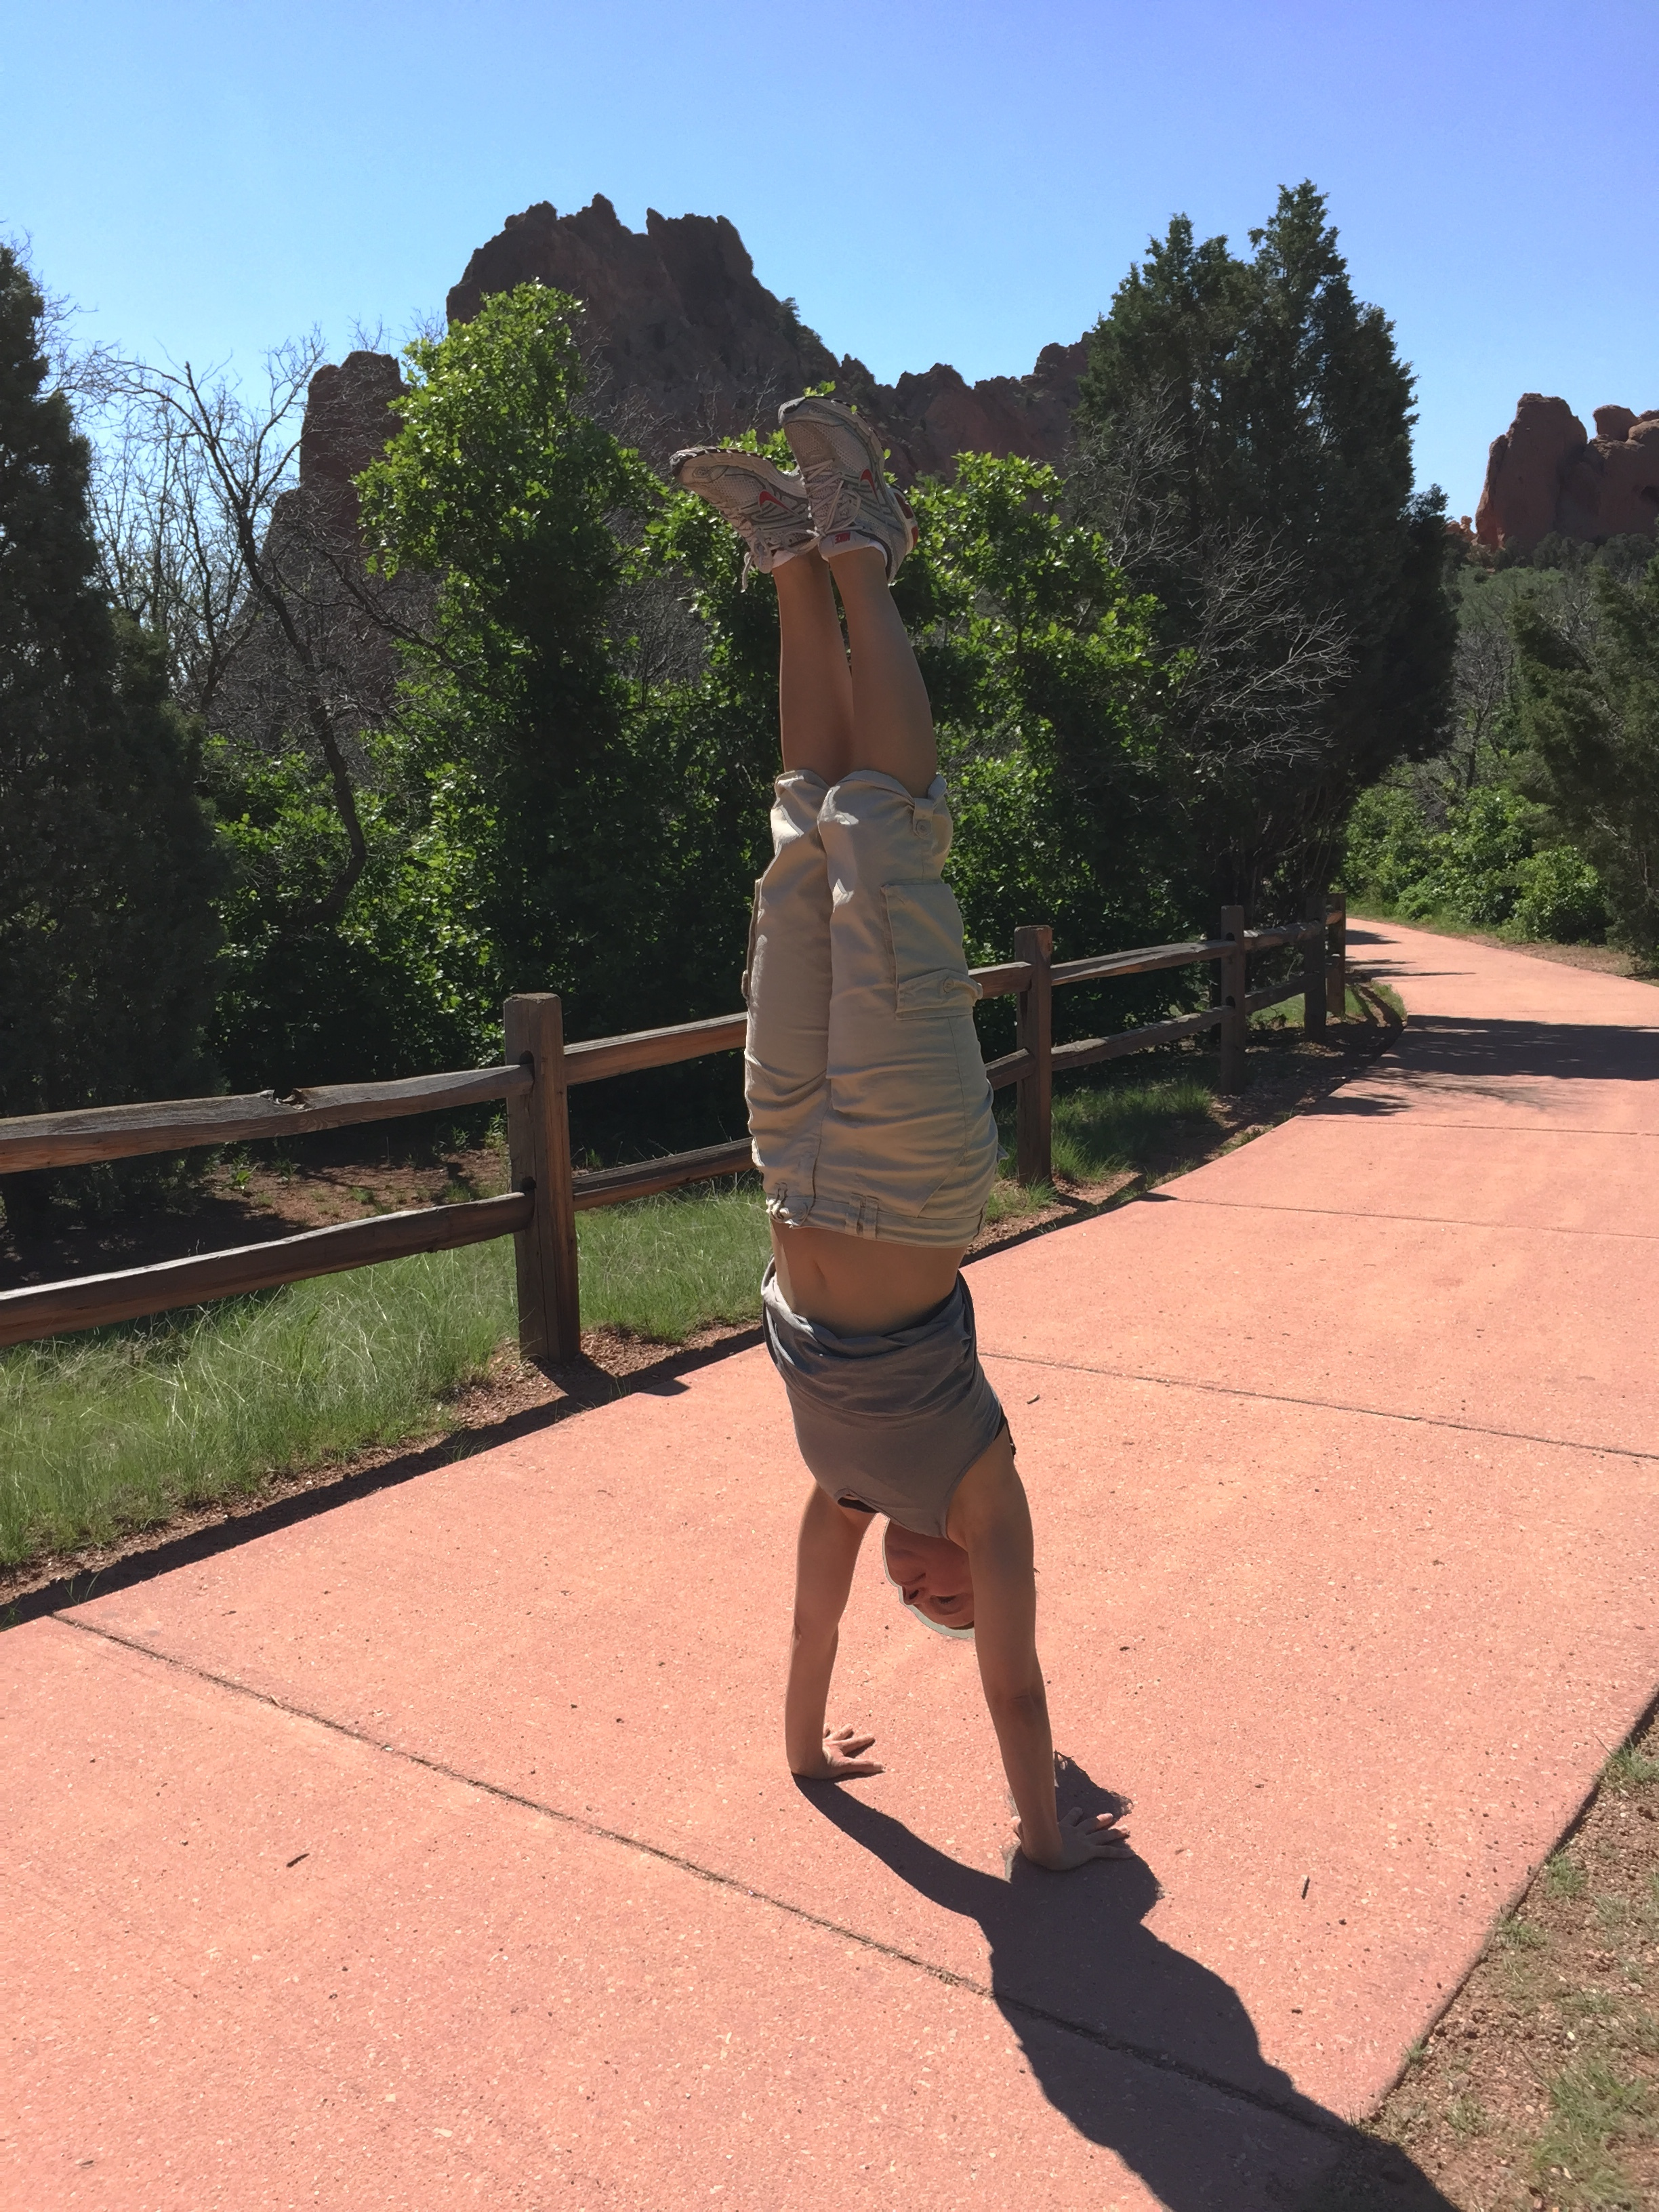 I've always found happiness in handstands!